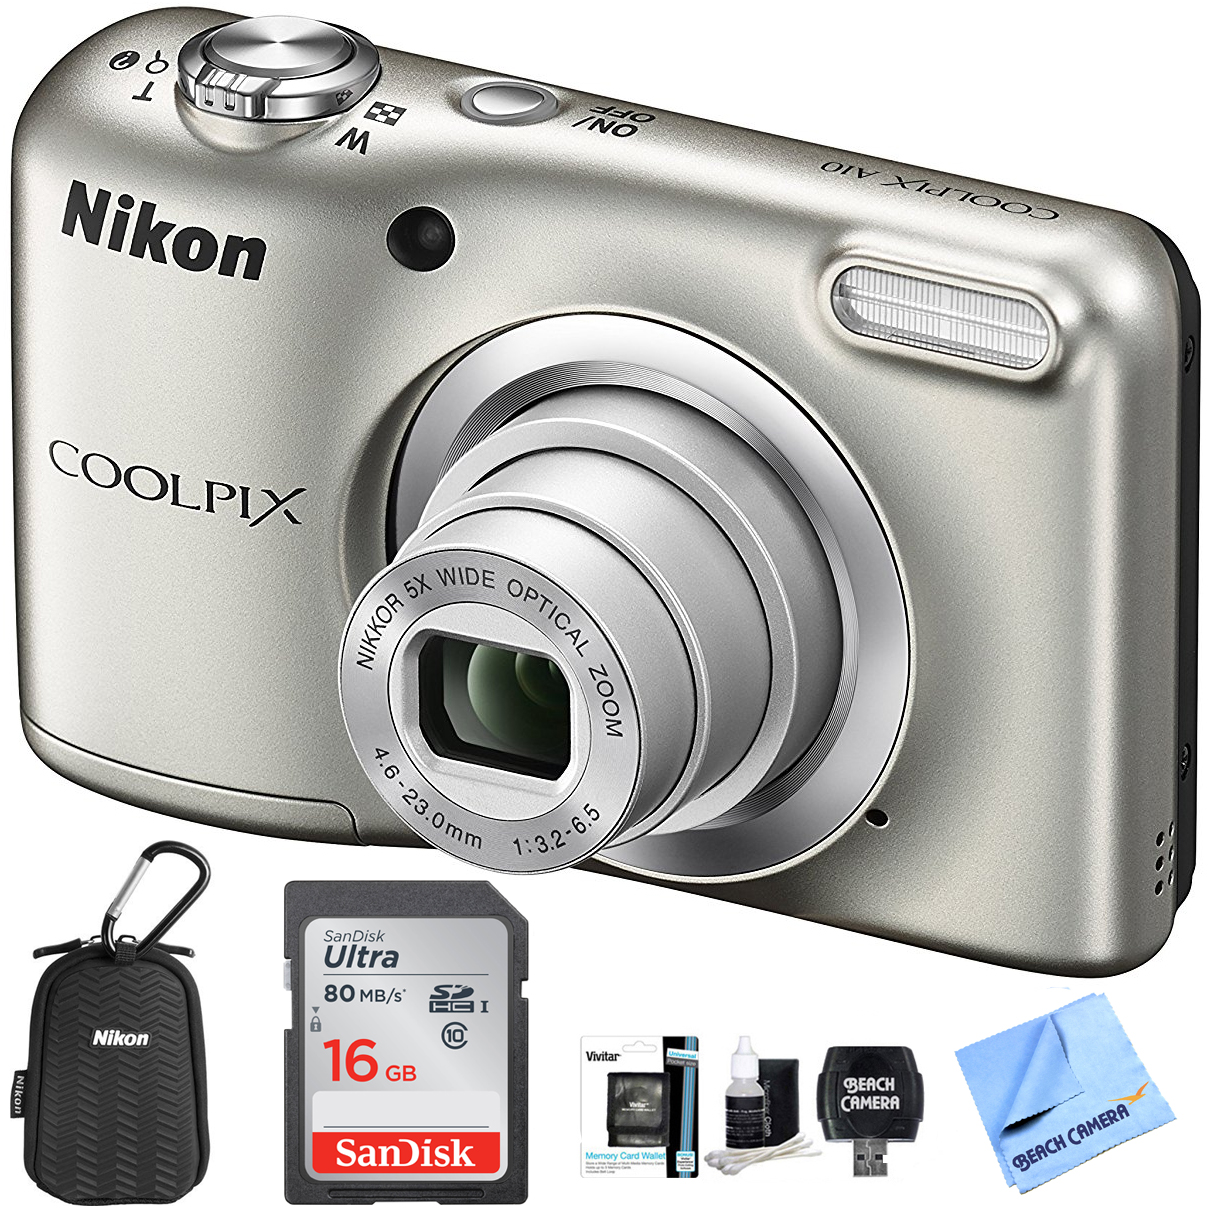 Nikon COOLPIX A10 Digital Camera 16.1MP 5x Zoom NIKKOR Glass Lens - Silver with 16GB Memory Card All Weather Sport Case Bundle (Certified Refurbished)